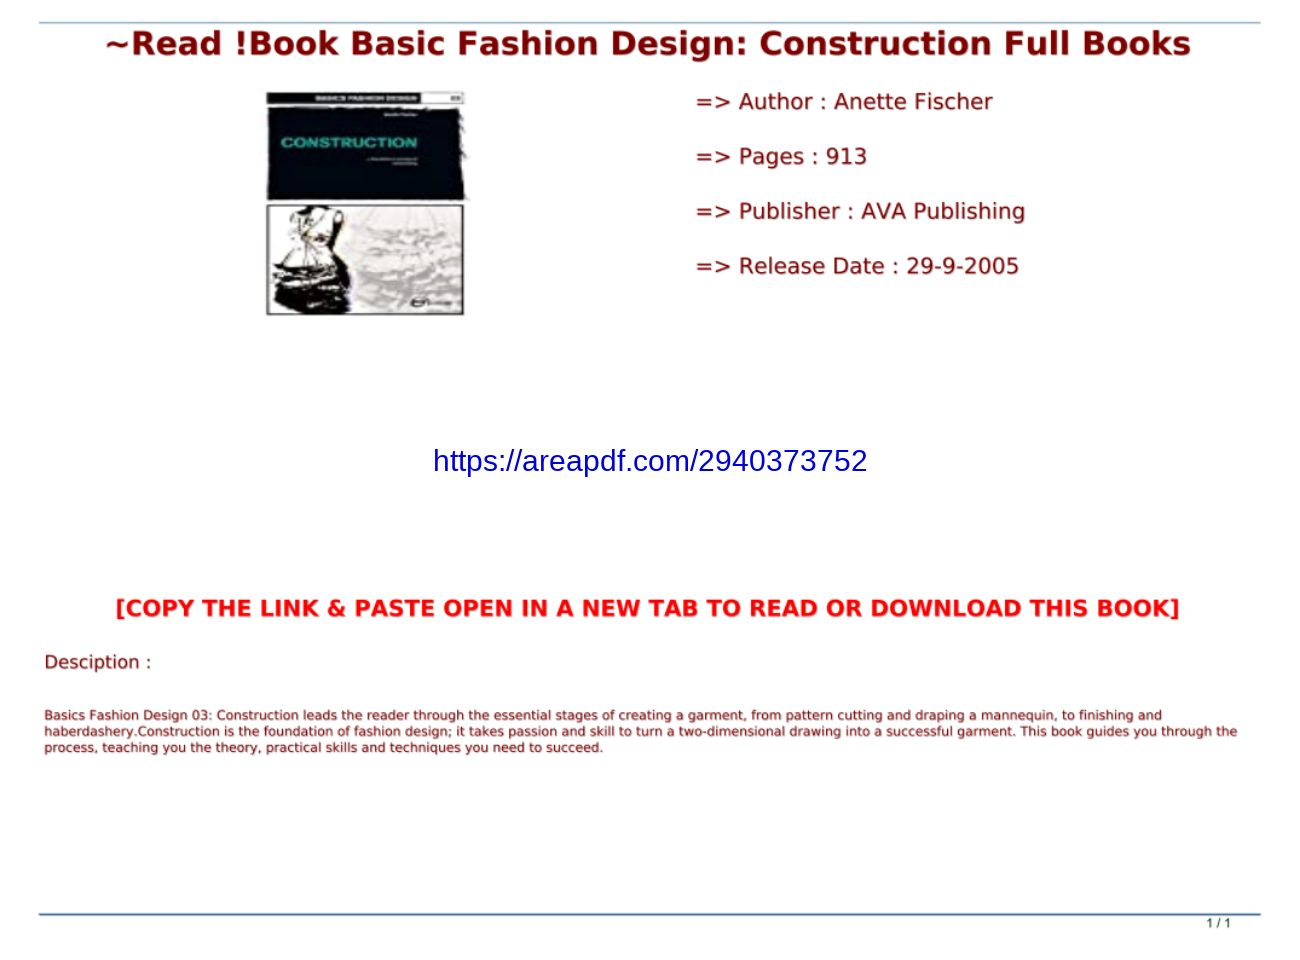 Read Book Basic Fashion Design Construction Full Books Text Images Music Video Glogster Edu Interactive Multimedia Posters